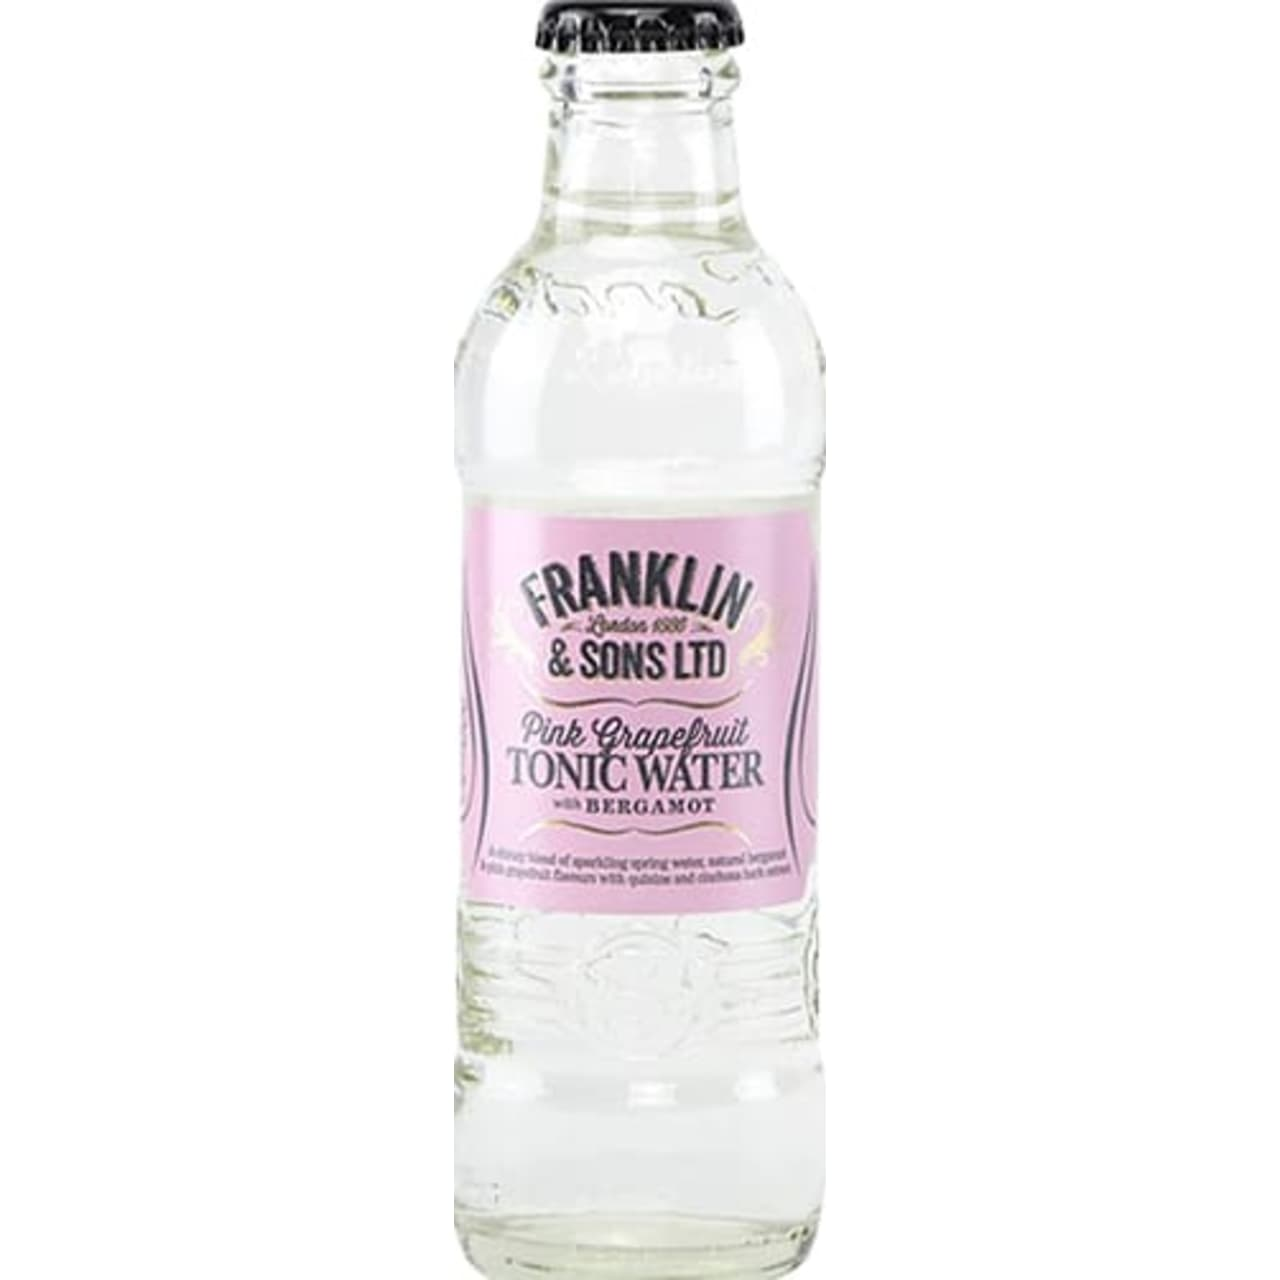 Product Image - Franklin & Sons Pink Grapefruit Tonic with Bergamot Pack of 24